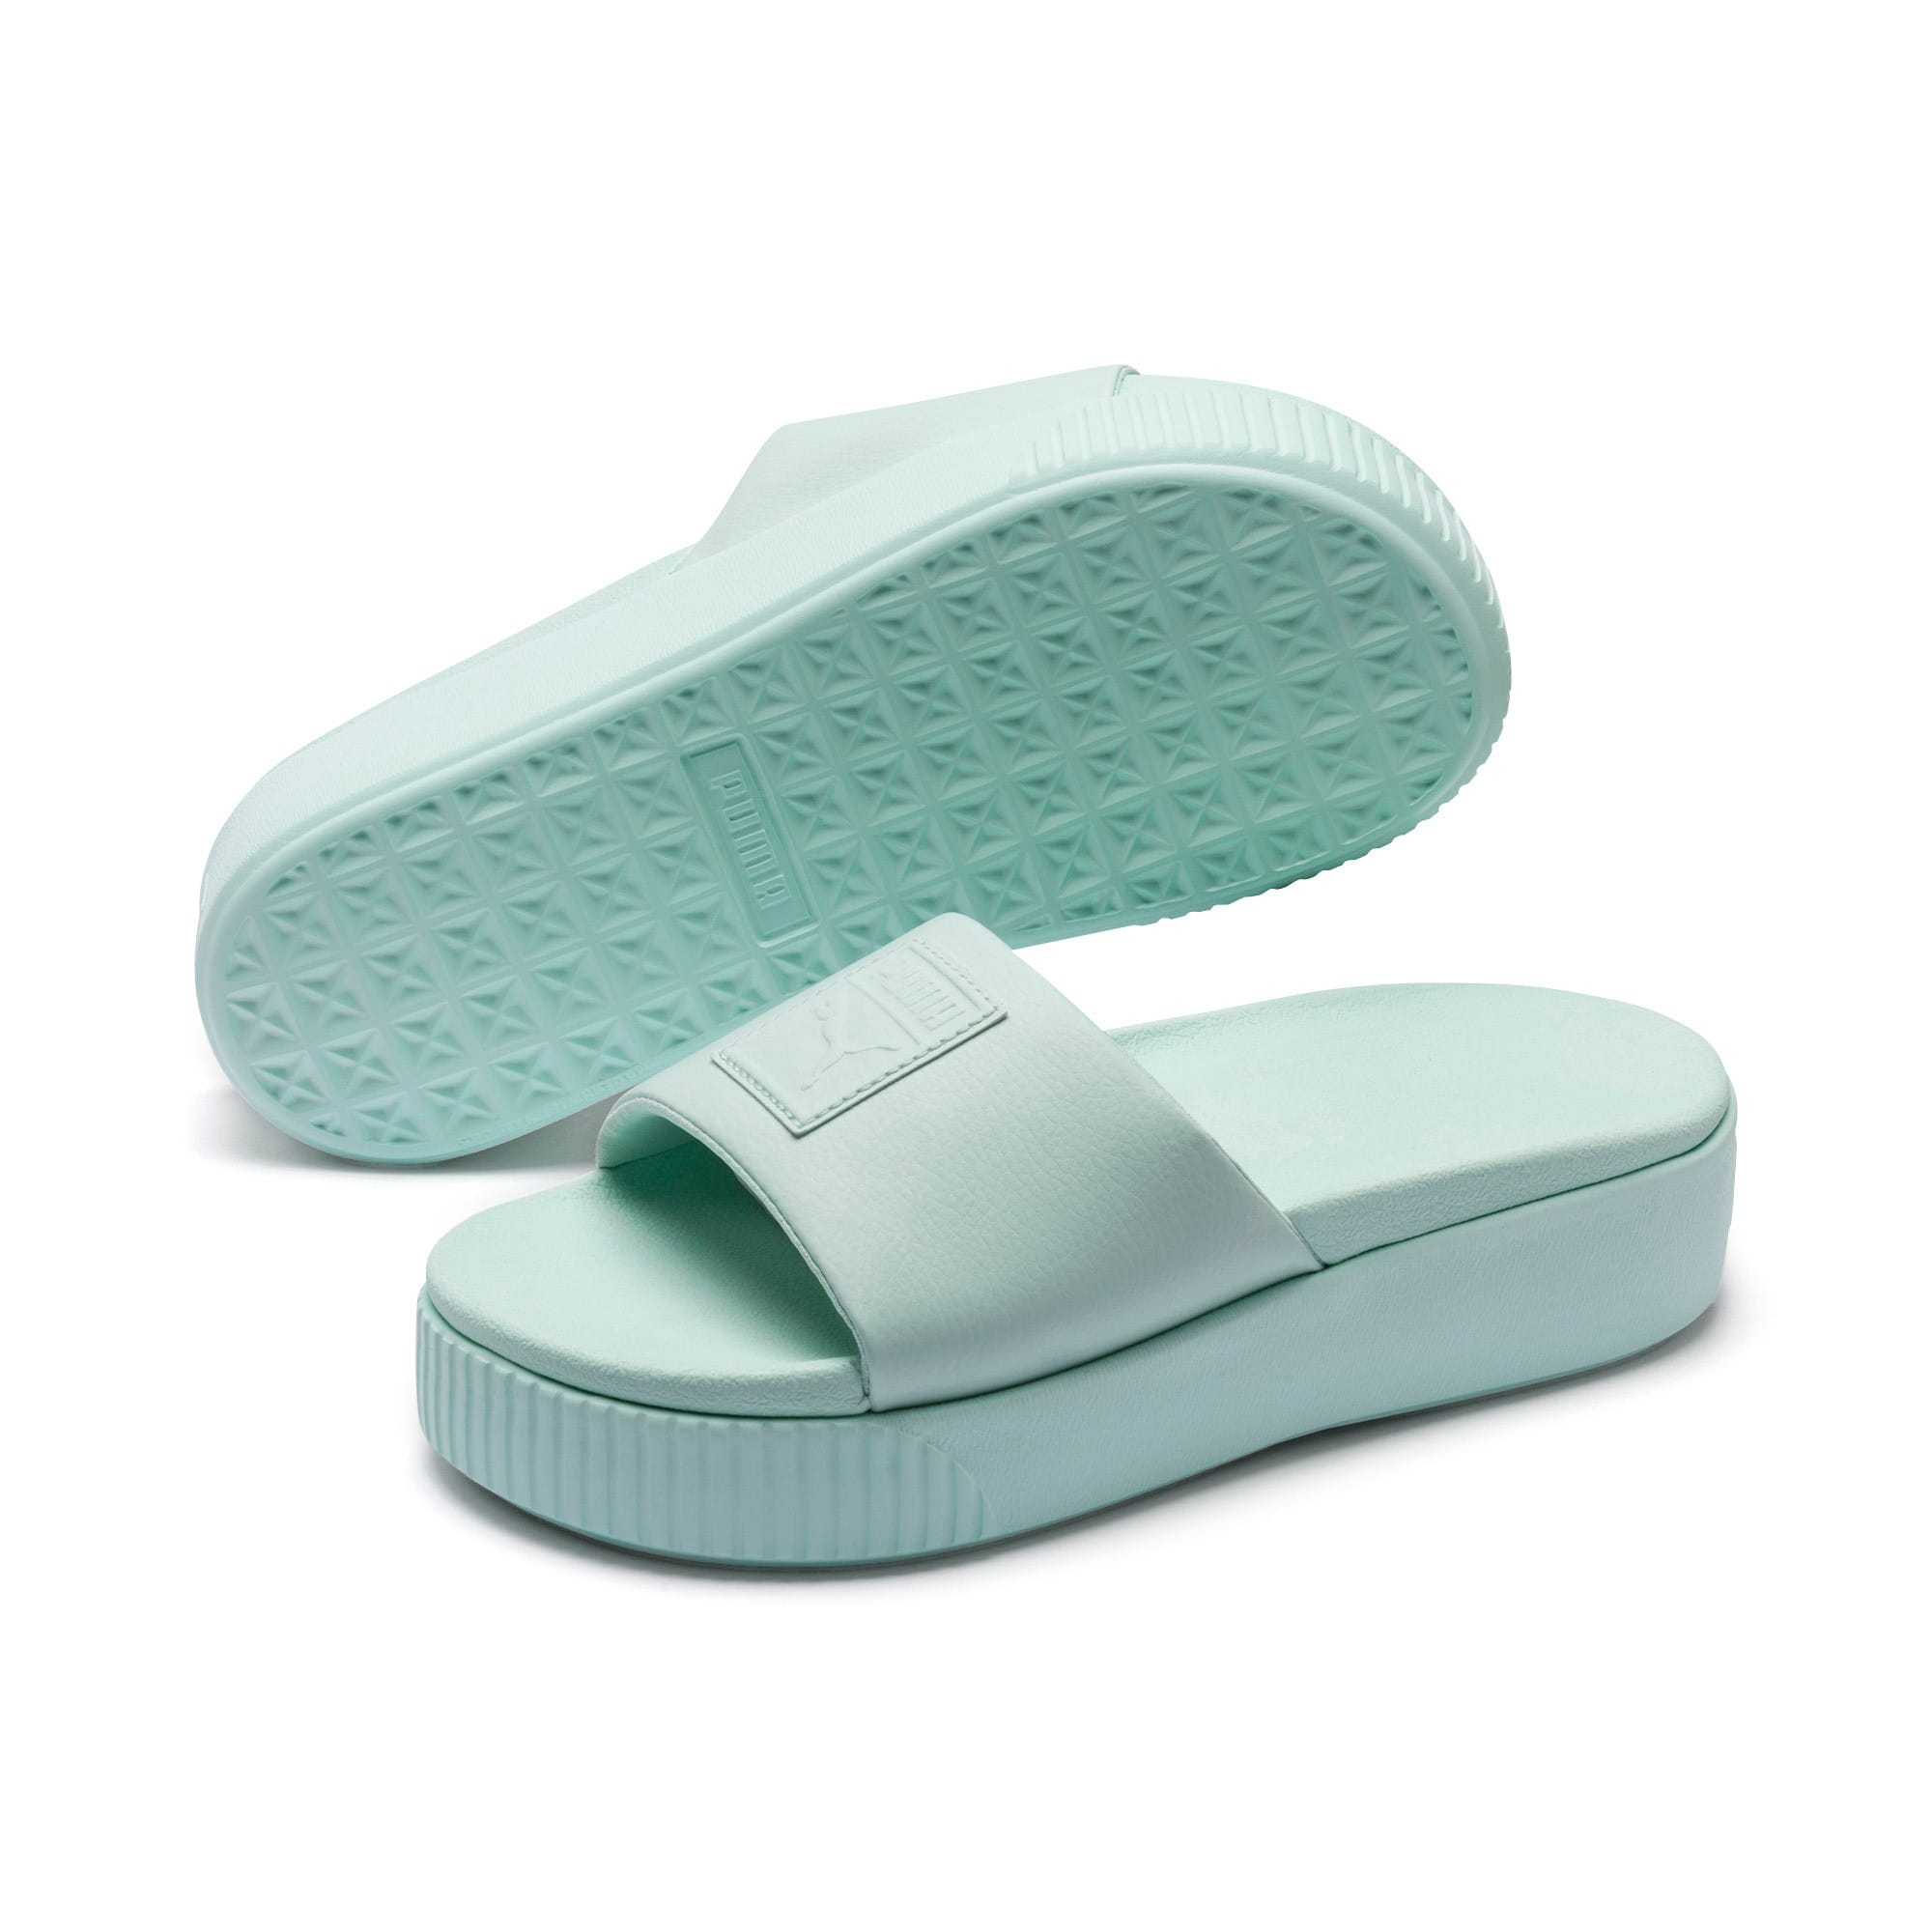 Thumbnail 2 of Platform Slide Women's Sandals, Fair Aqua-Fair Aqua, medium